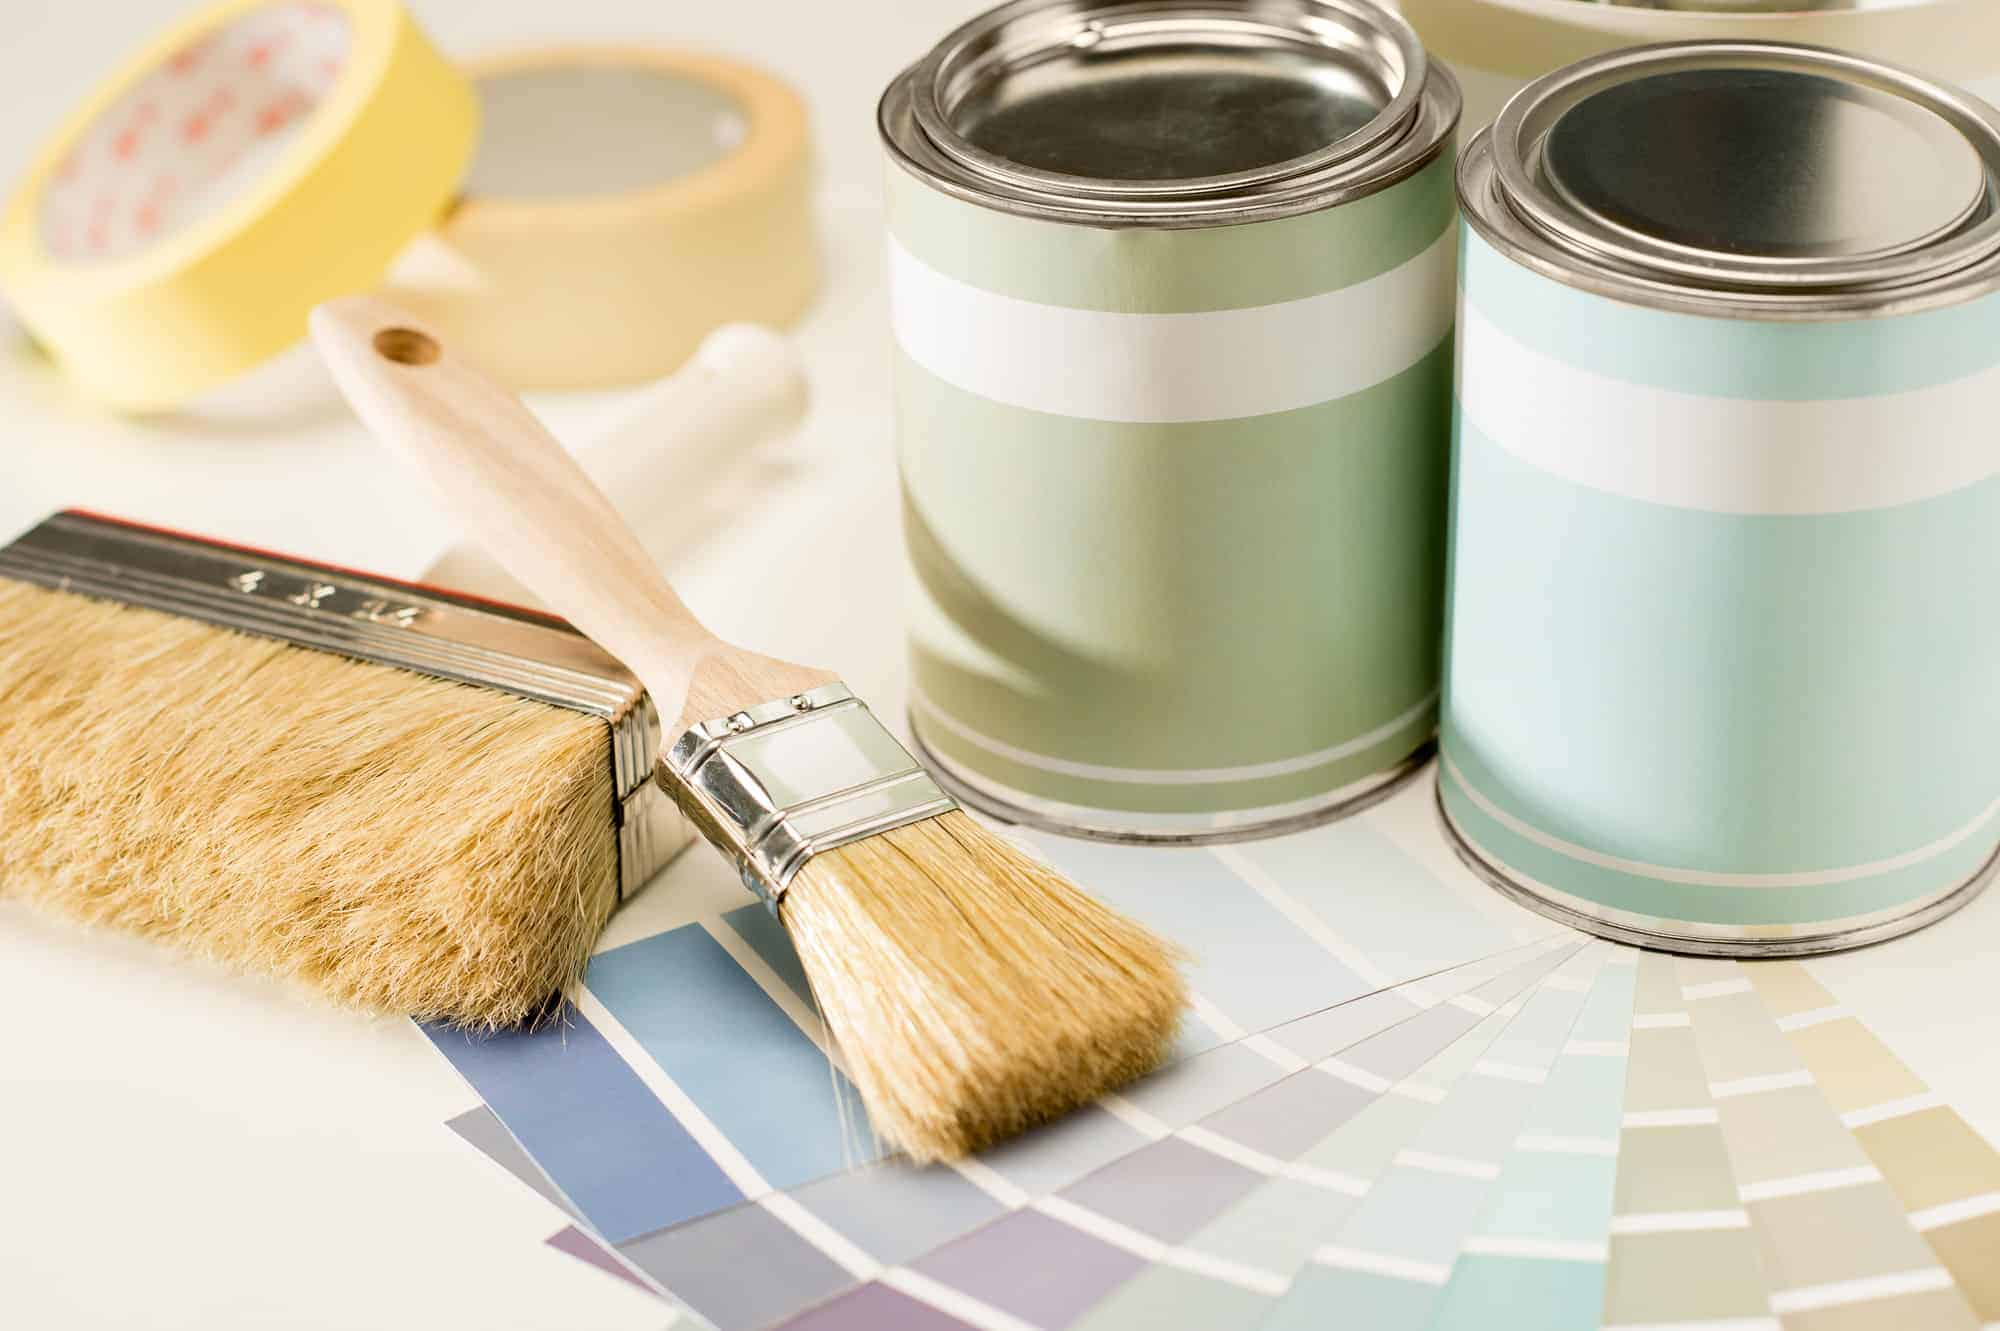 Which paint sheen is right for your job? What supplies do I need? This and other DIY 101 questions answered!